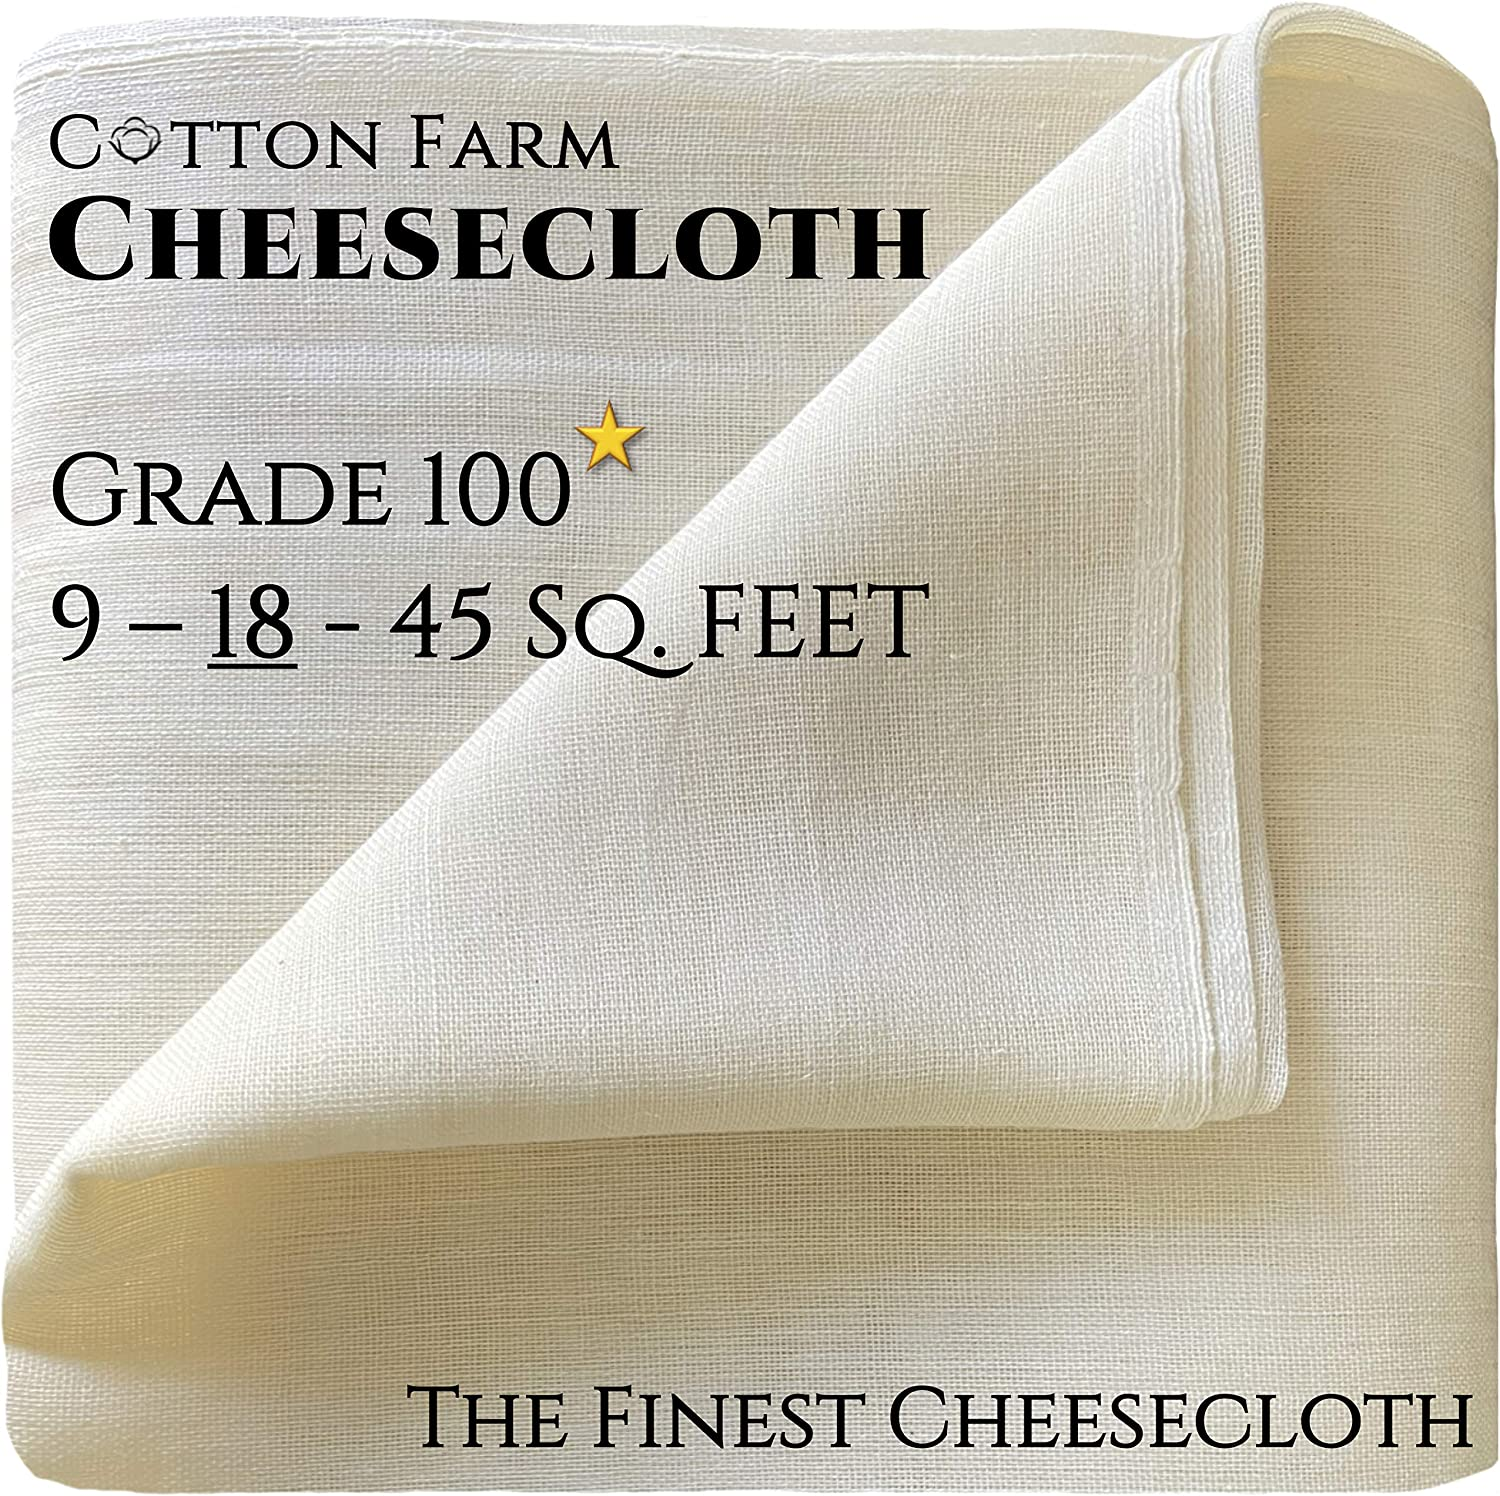 NEW - Cotton Farm - Cheesecloth, Grade 100, 9-18-45 Sq. Ft, Ultra Fine and Dense, Unbleached, Reusable, Washable; Best for Straining, Filtering, Roasting, Cleaning, from Mediterranean